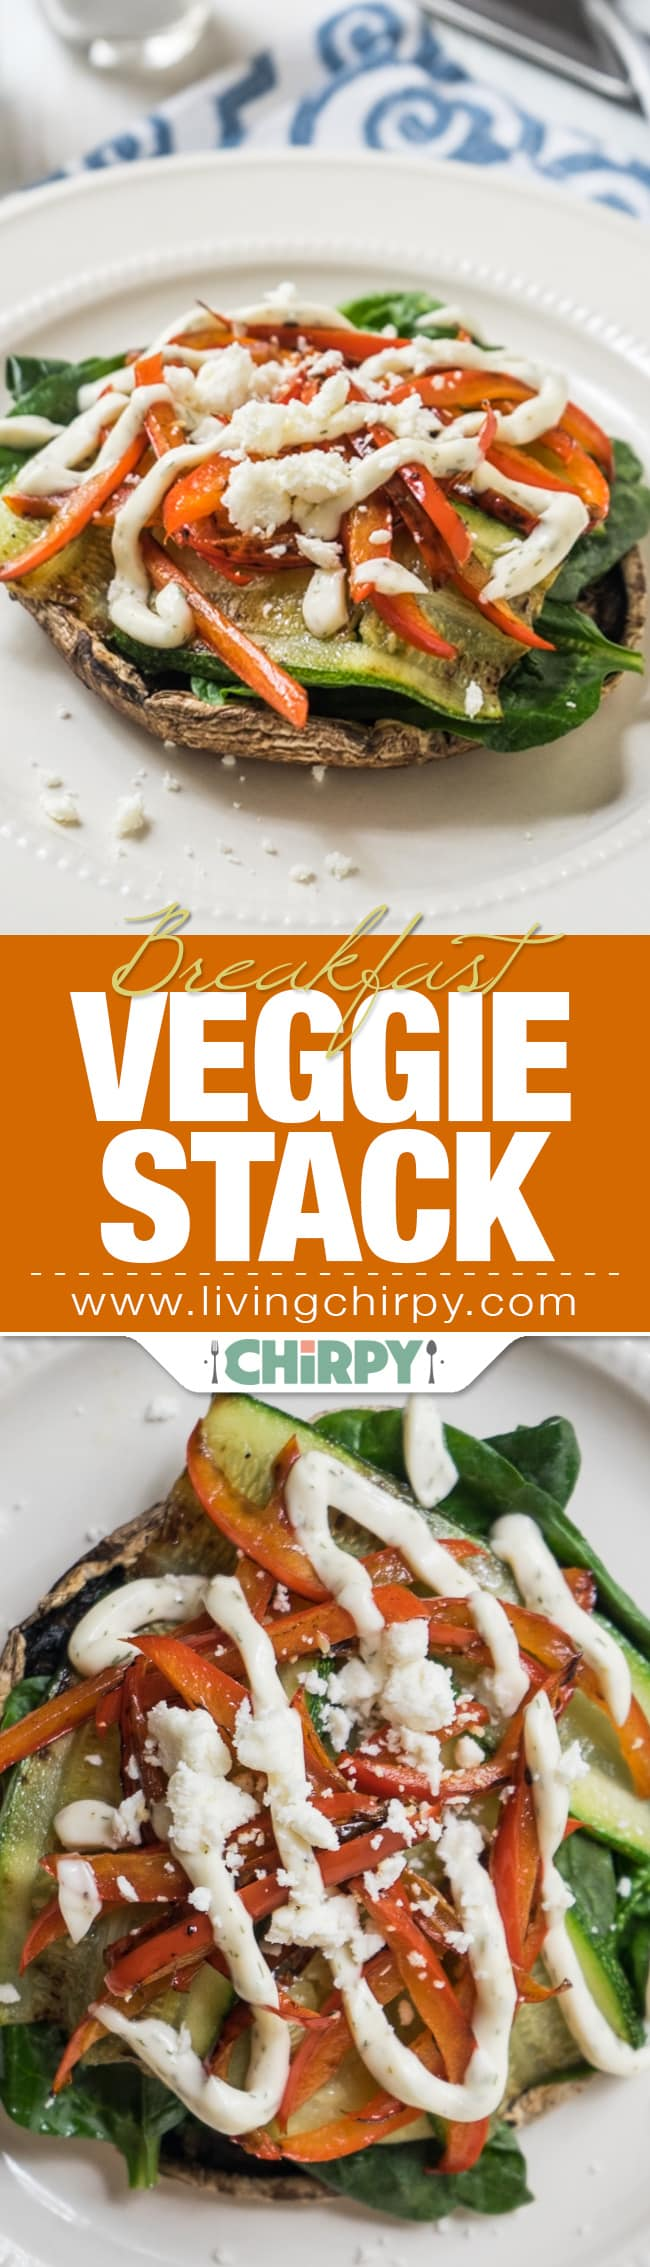 Breakfast Veggie Stack Pin